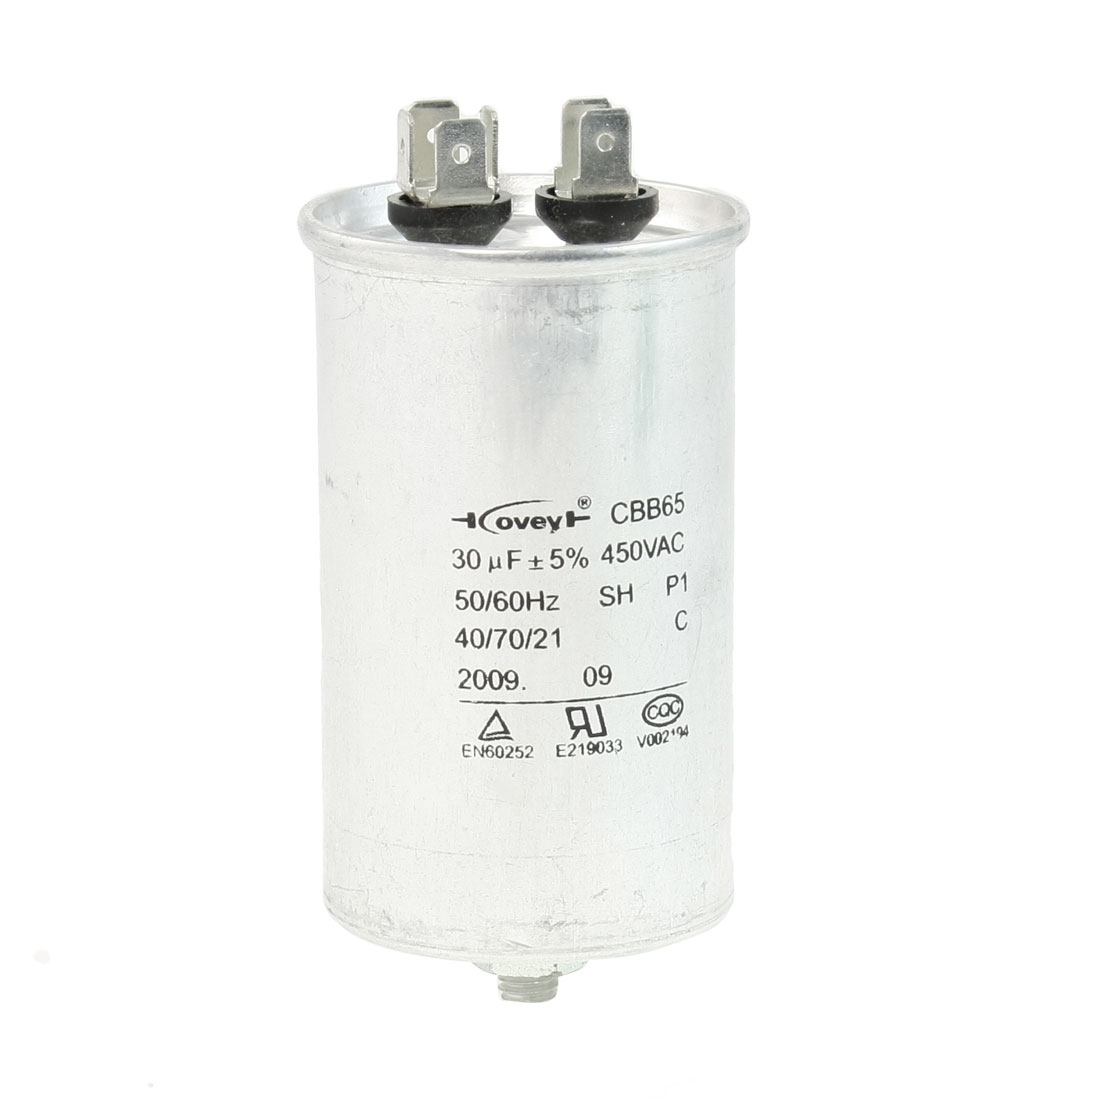 Air Conditioner AC 450V 30uF Cylindrical Motor Capacitor CBB65